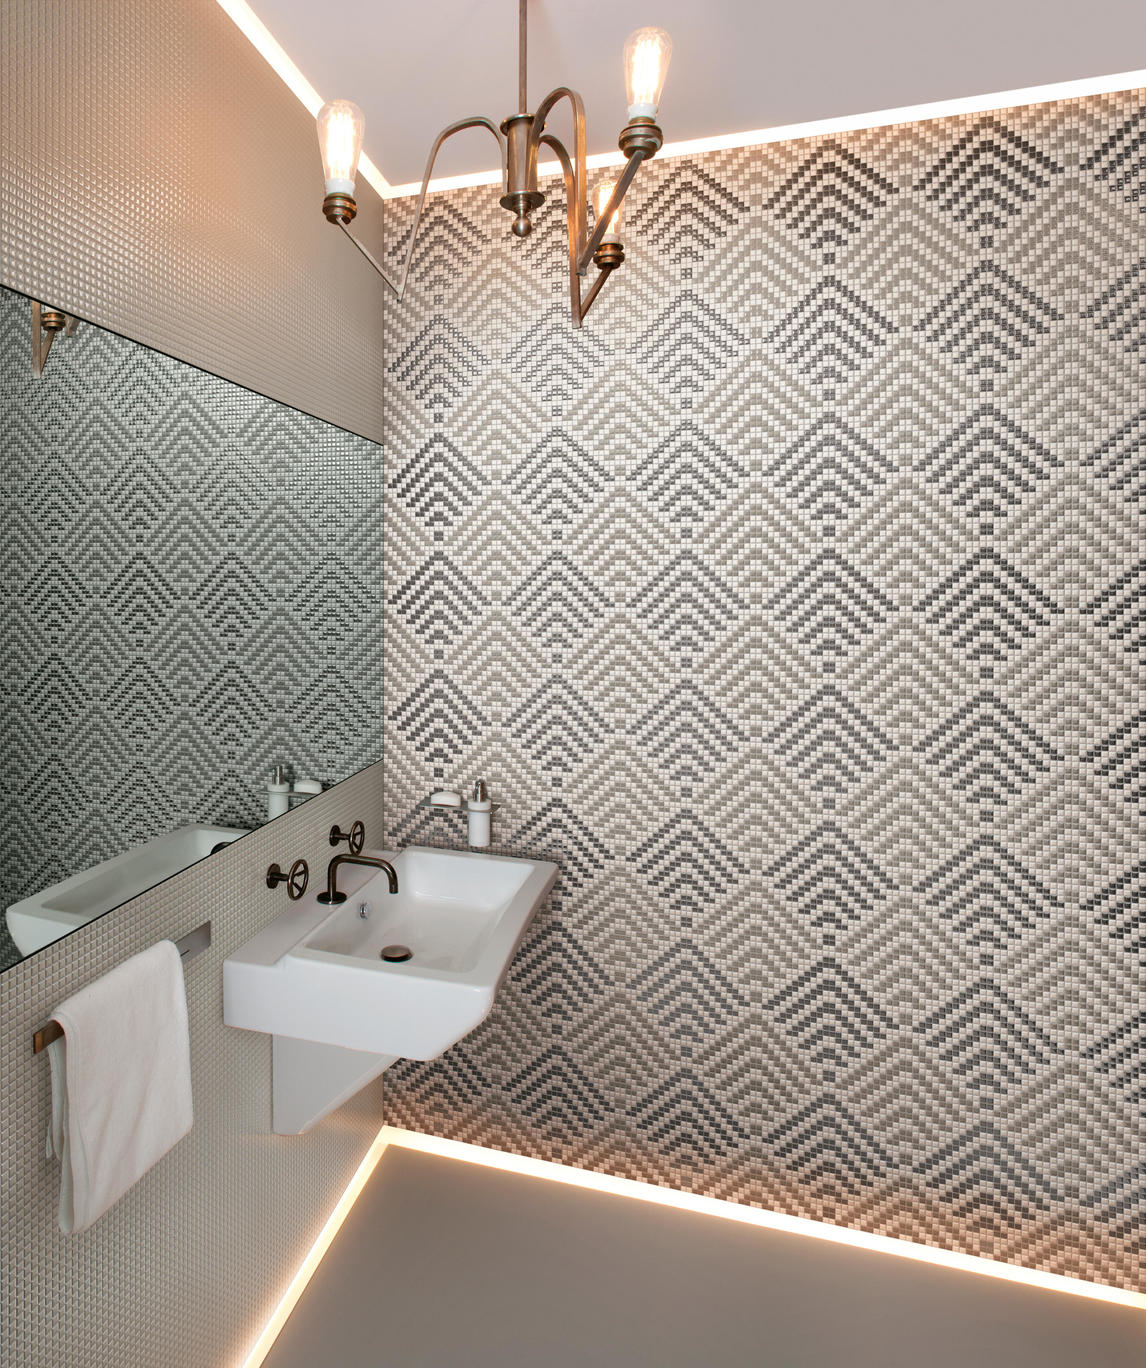 tile stores in new jersey nj where